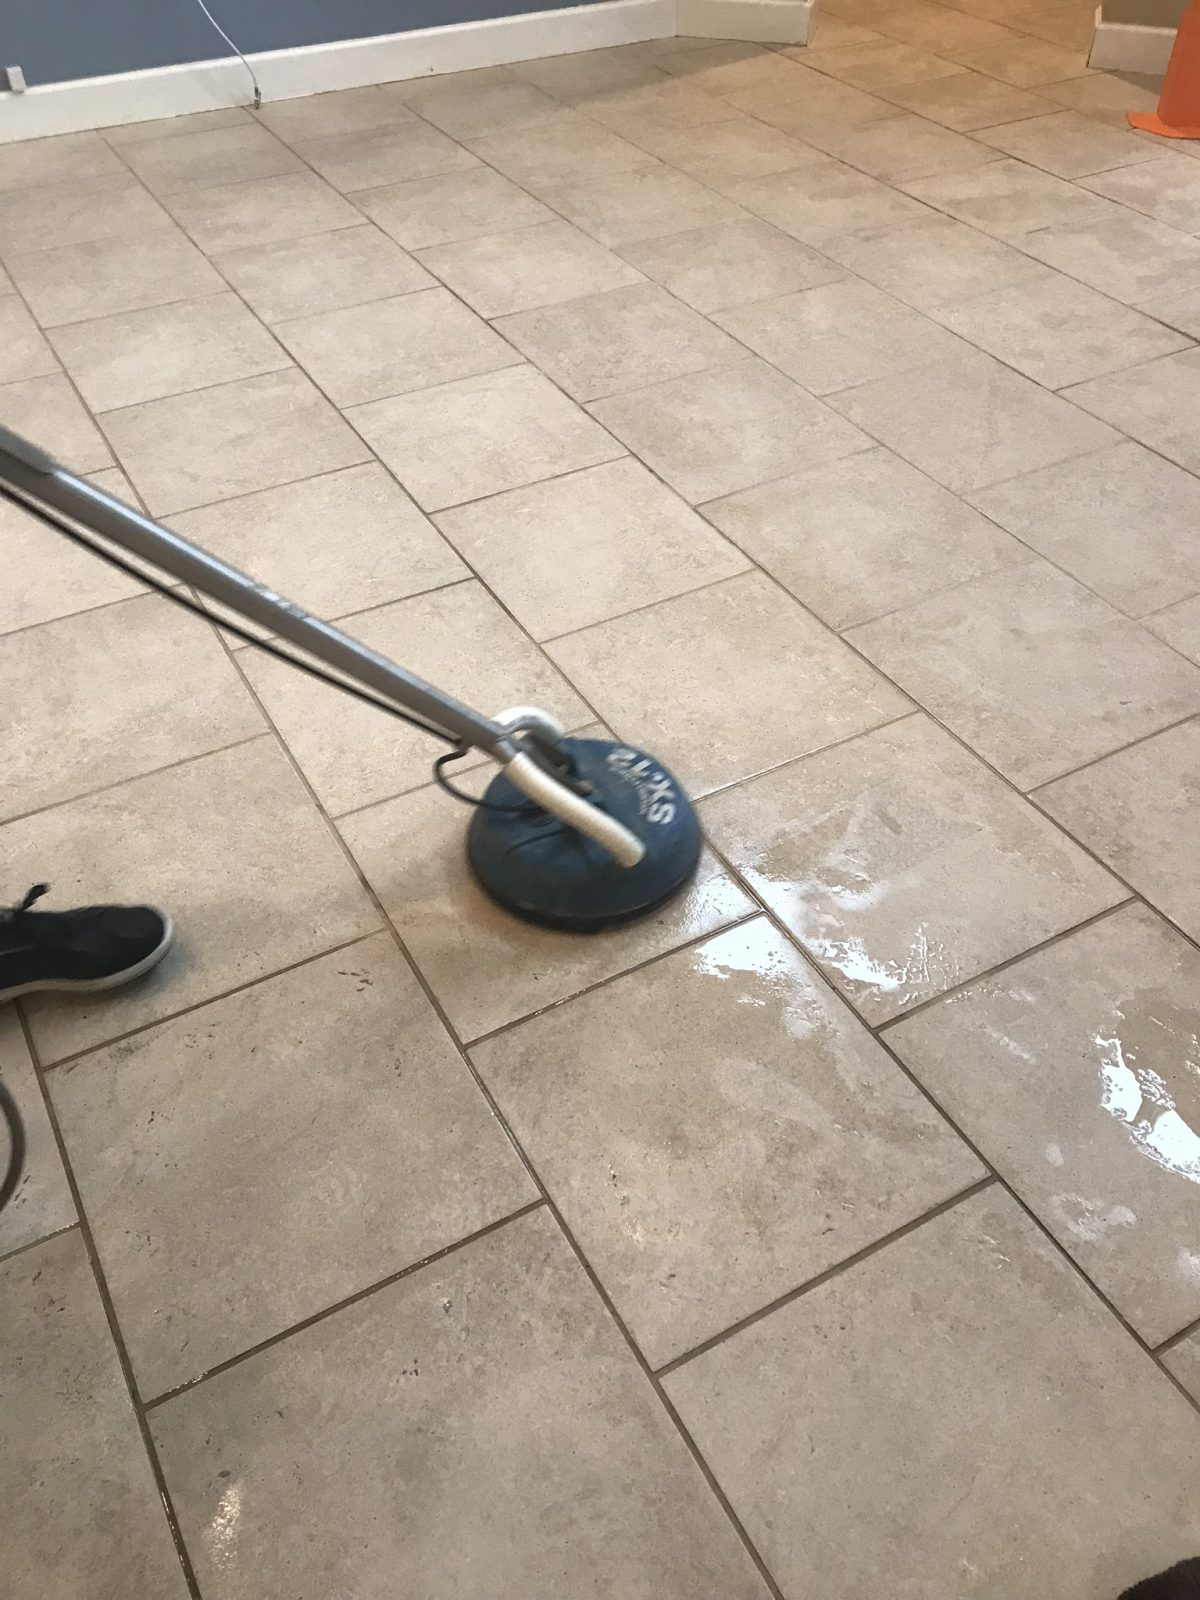 Professional Tile & Grout Cleaning Palm Harbor Florida by Howards Cleaning Service